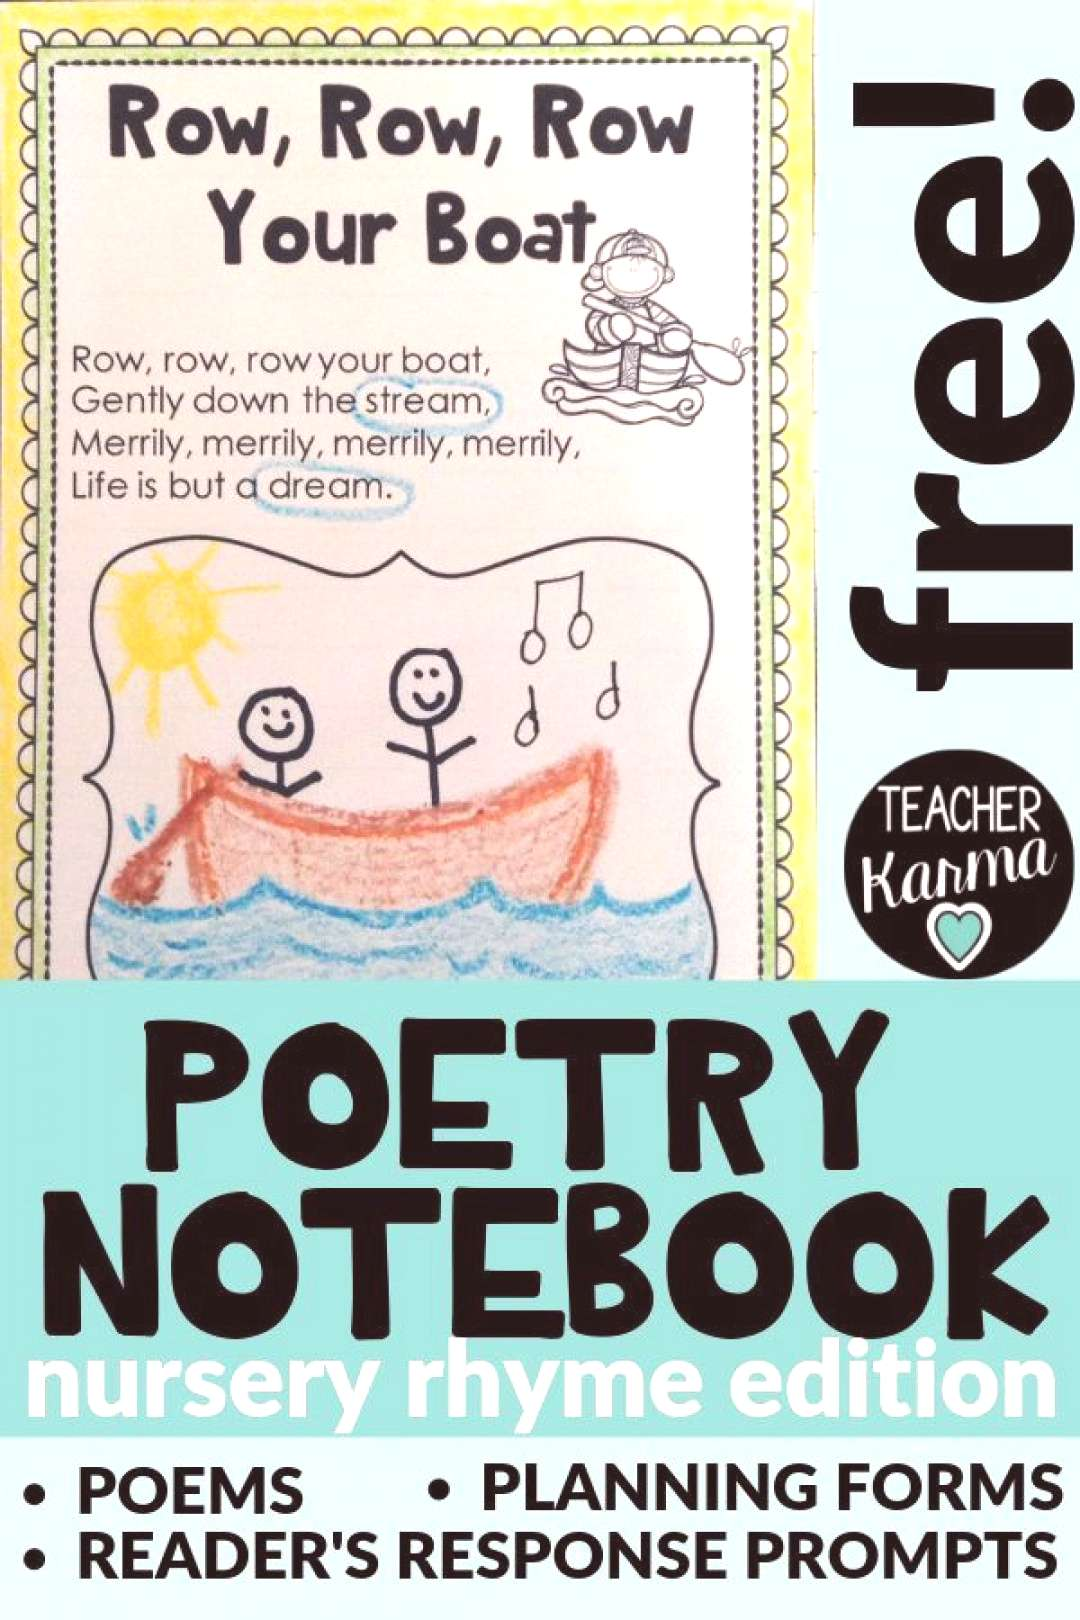 FREE Poetry Notebook Will Change Your Teaching Life — Teacher KARMA Click on the pin to grab the